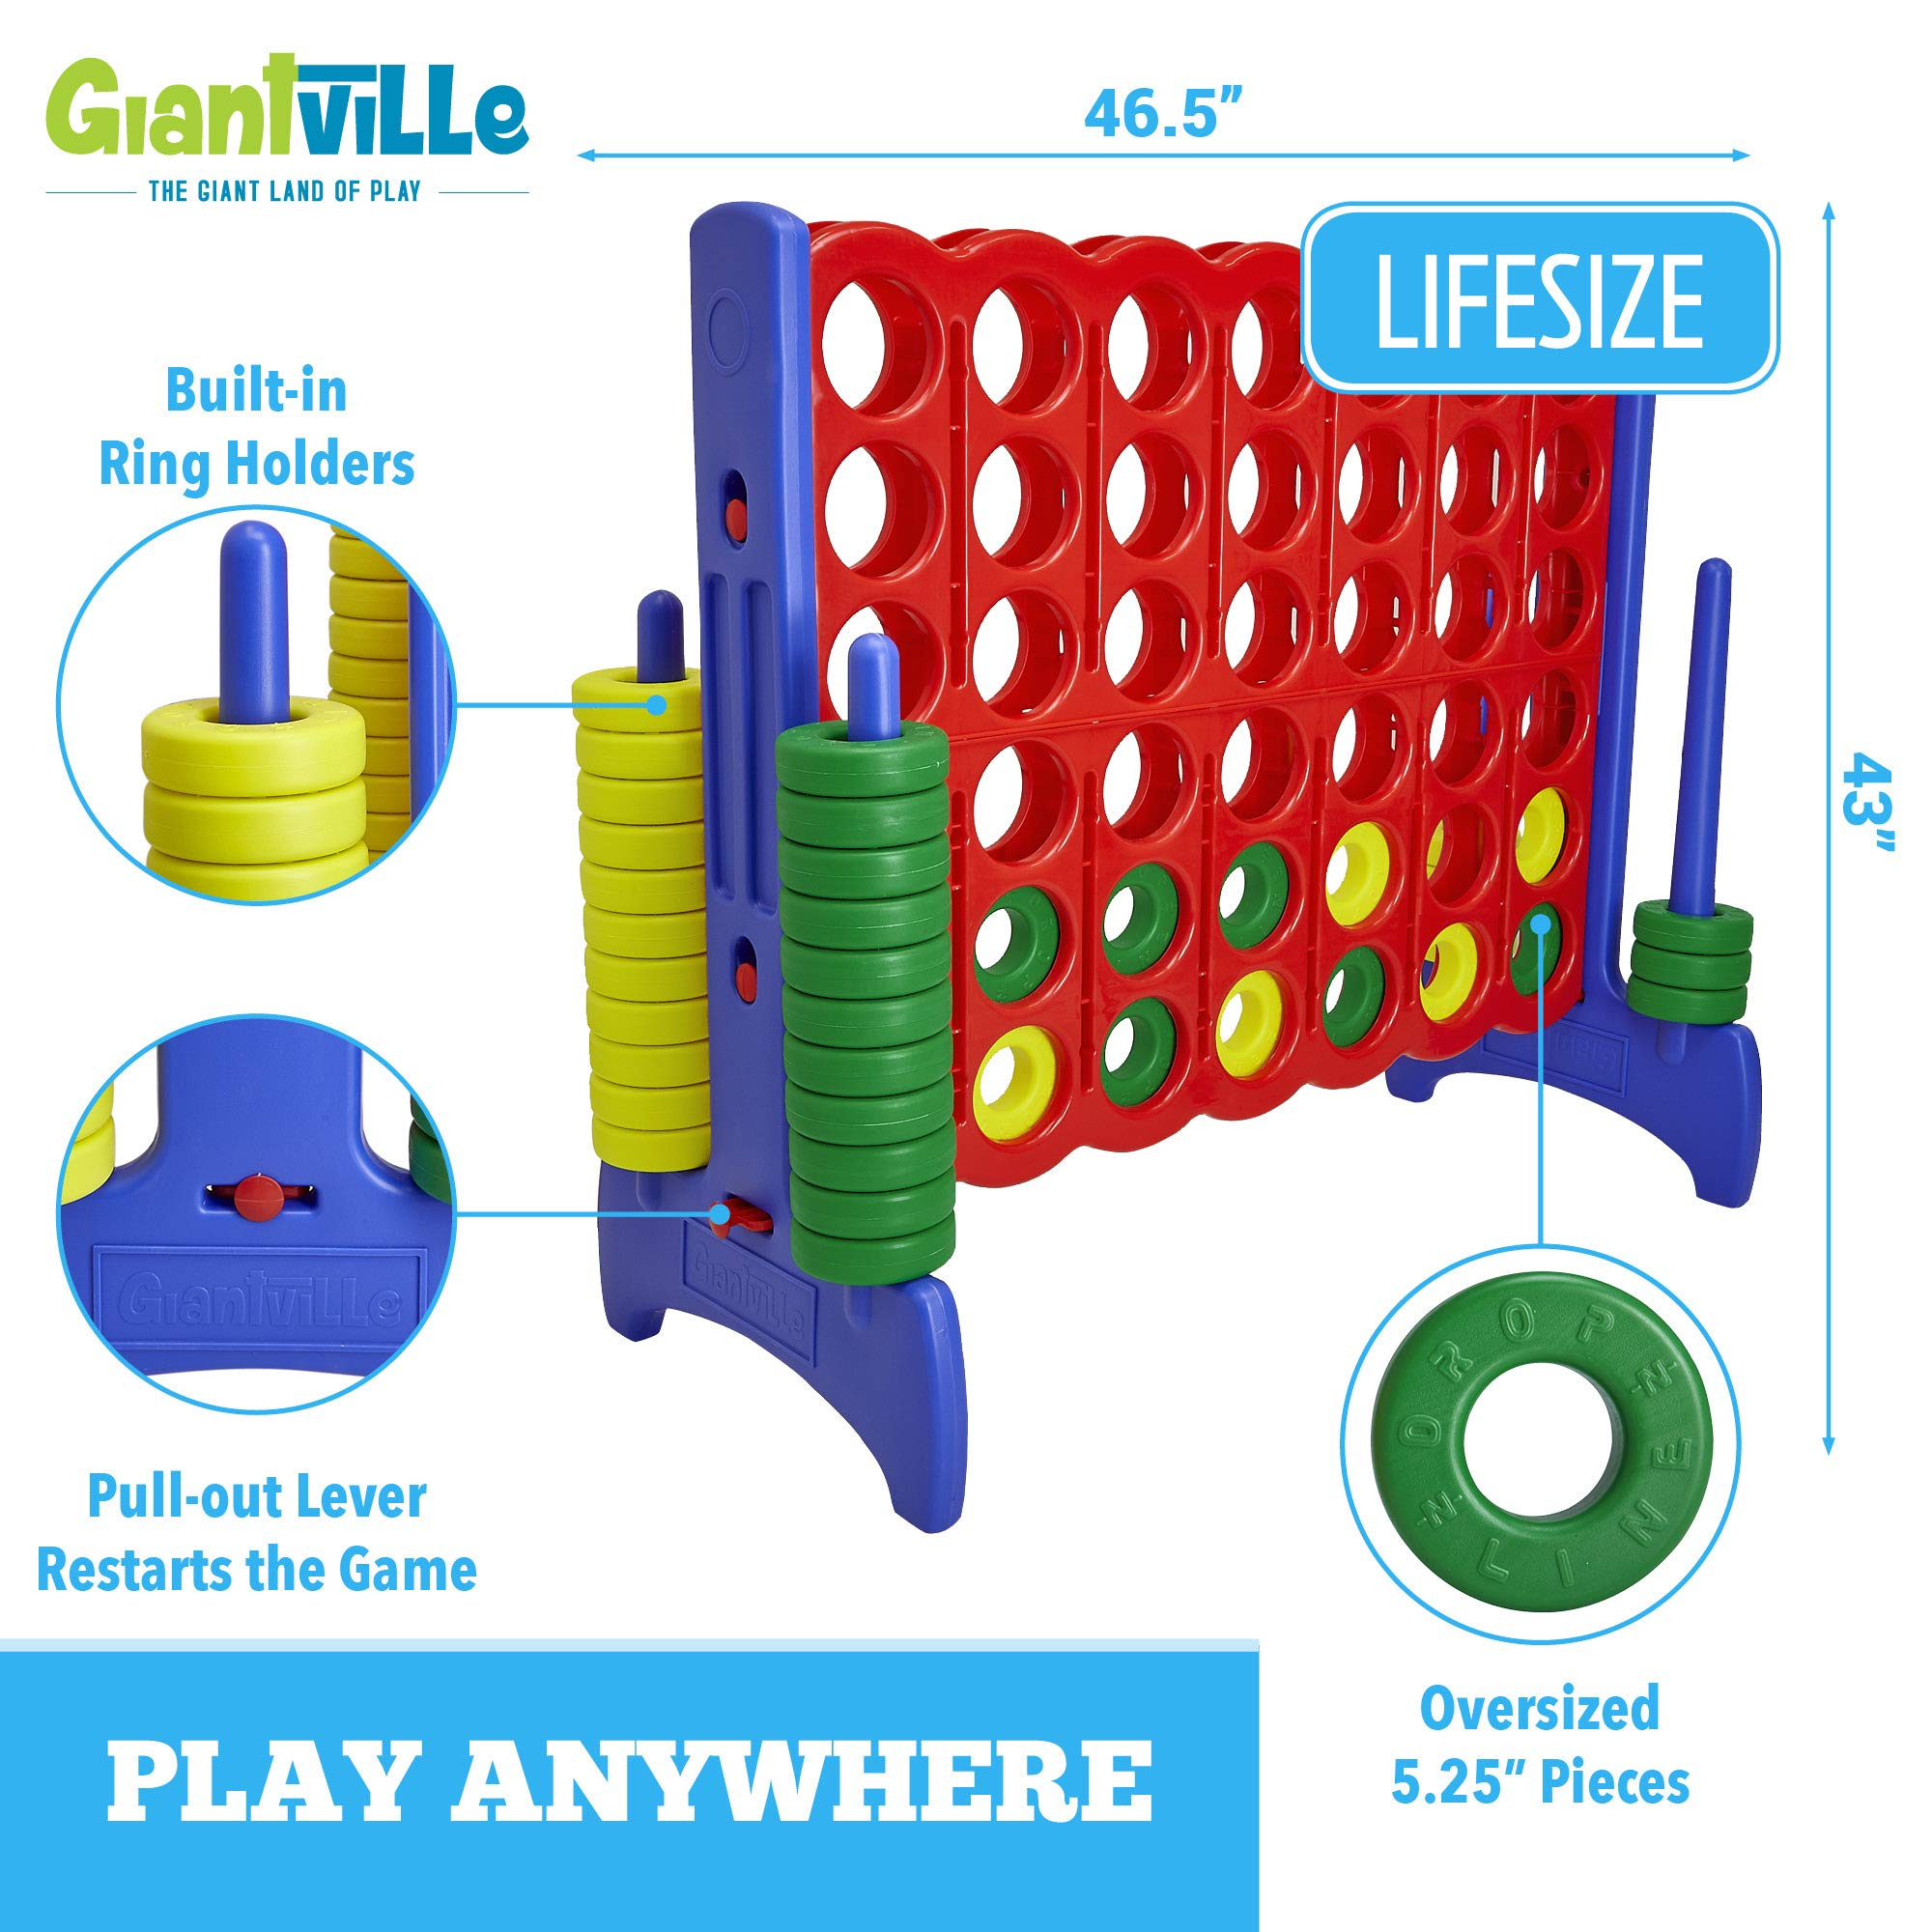 Giant 4 in a Row Connect Game - 4 Feet Wide by 3.5 Feet Tall Oversized Floor Activity for Kids and Adults - Jumbo Sized for Outdoor and Indoor Play - by Giantville, Blue/Red by Giantville (Image #2)